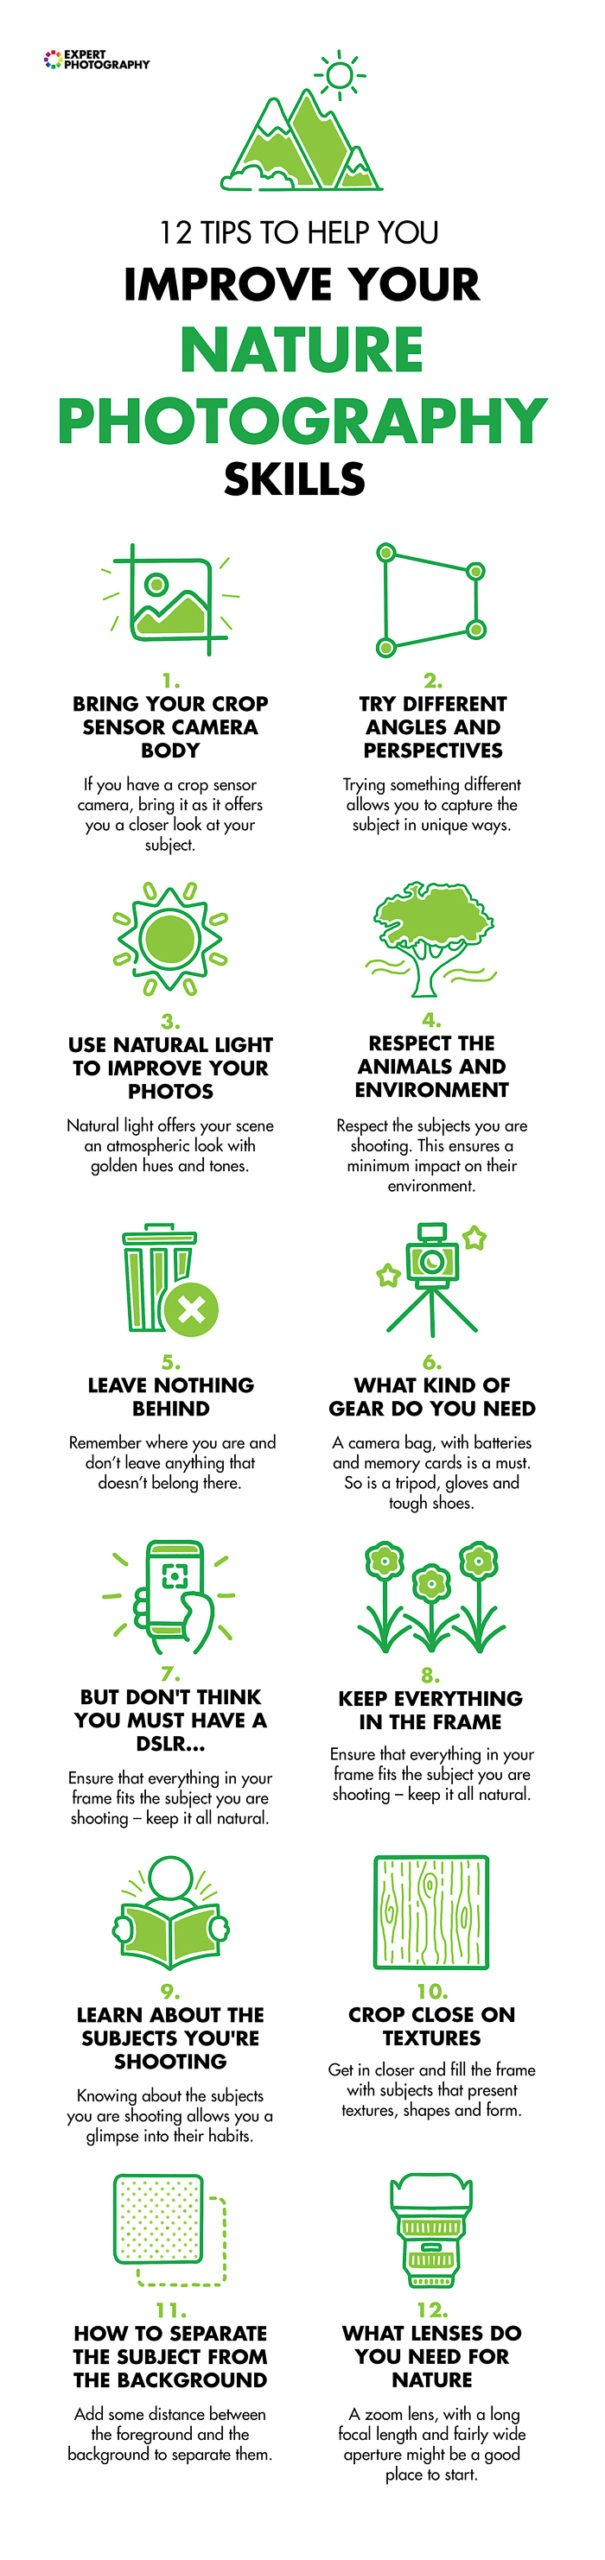 A cheat cheat with 12 nature photography concepts to help the learner improve their skills